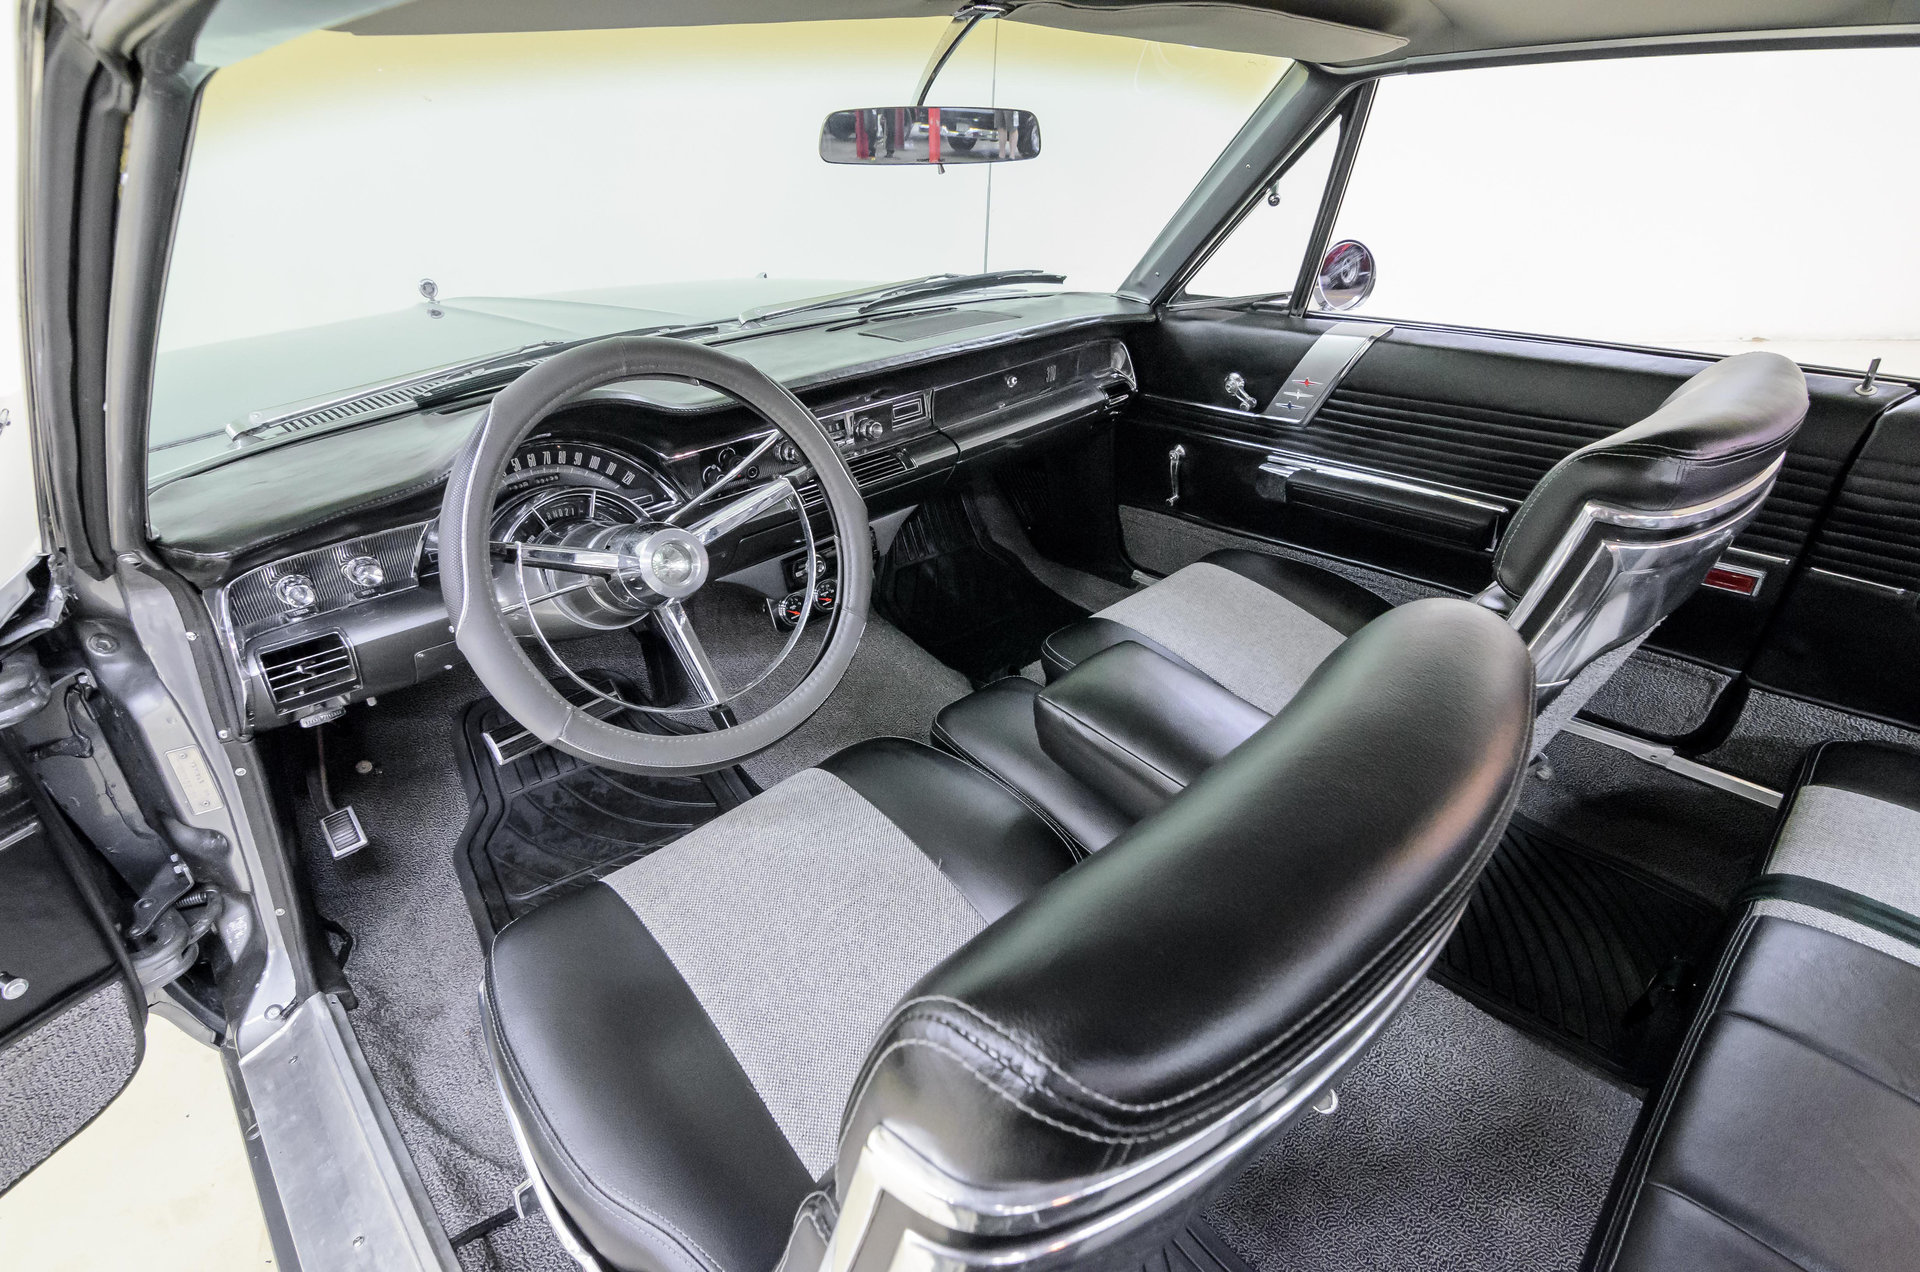 953381f2739c_hd_1966-chrysler-300 Great Description About 1955 Chrysler 300 for Sale with Inspiring Images Cars Review